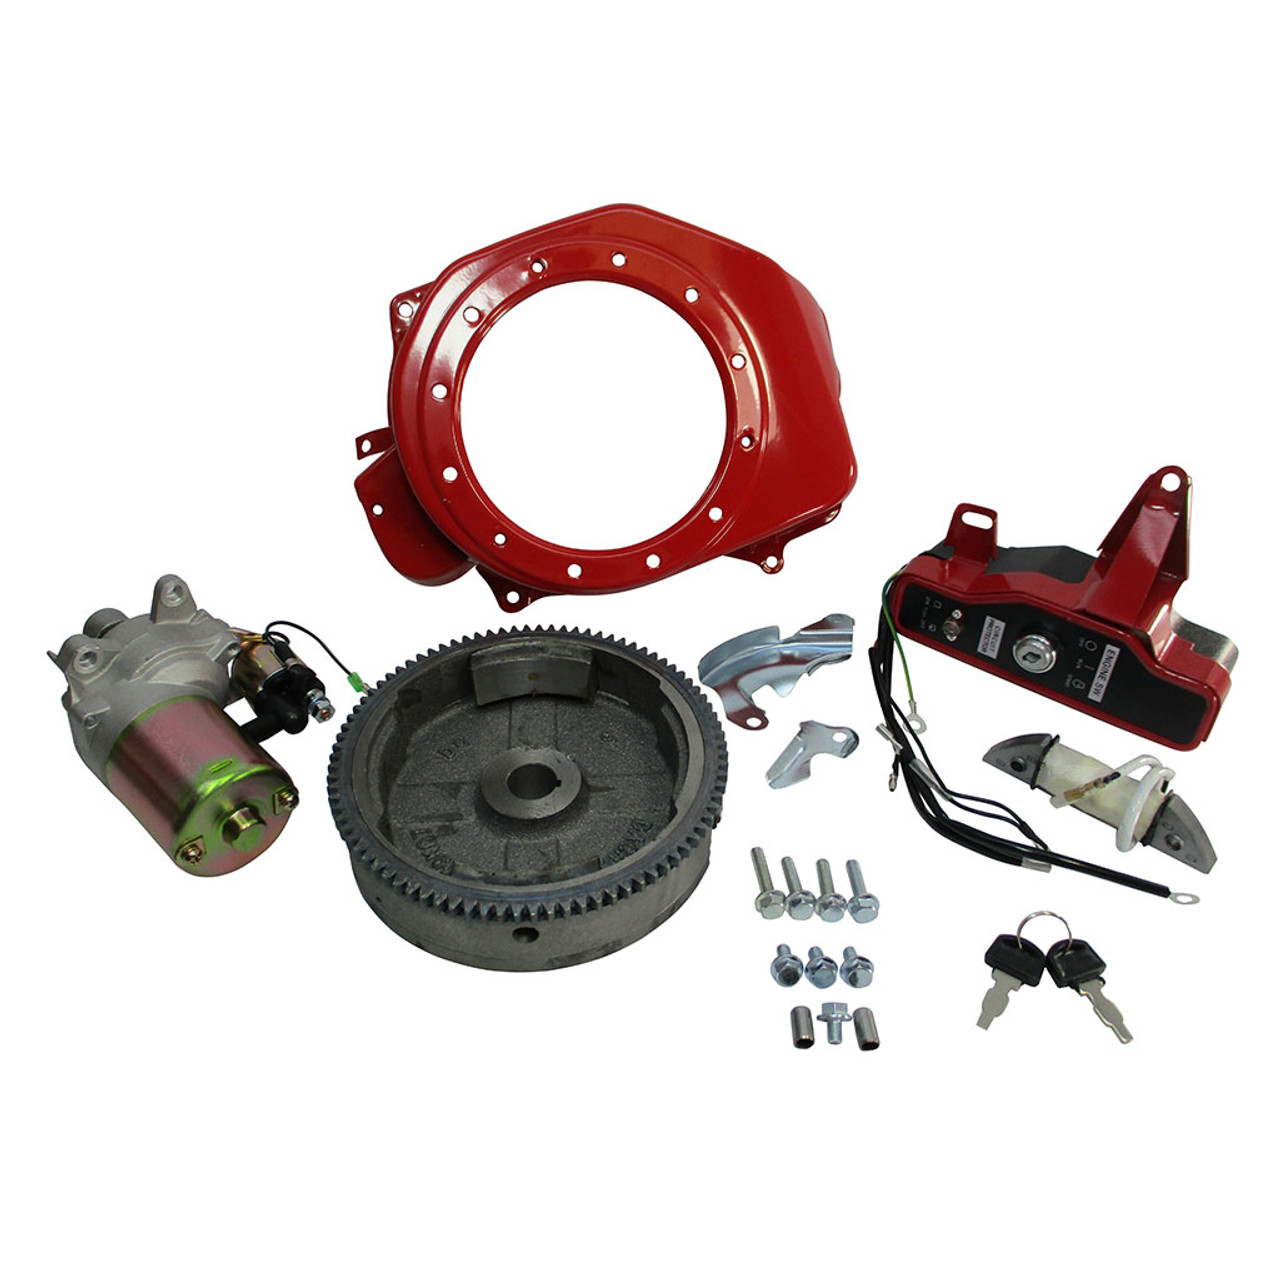 Electric Start Kit, GX200 and 196cc Clone, Aftermarket Replacement